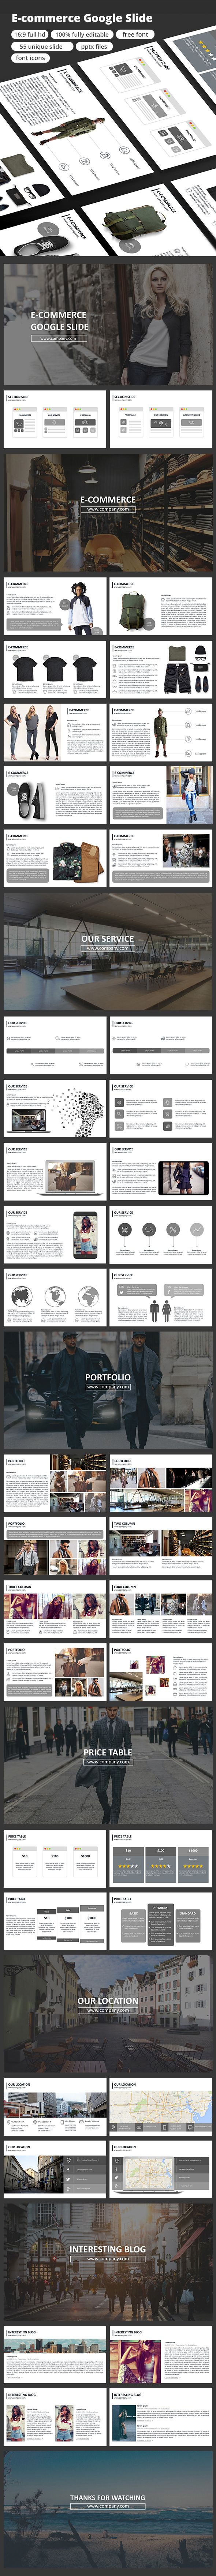 E-commerce - google slide - Google Slides Presentation Templates